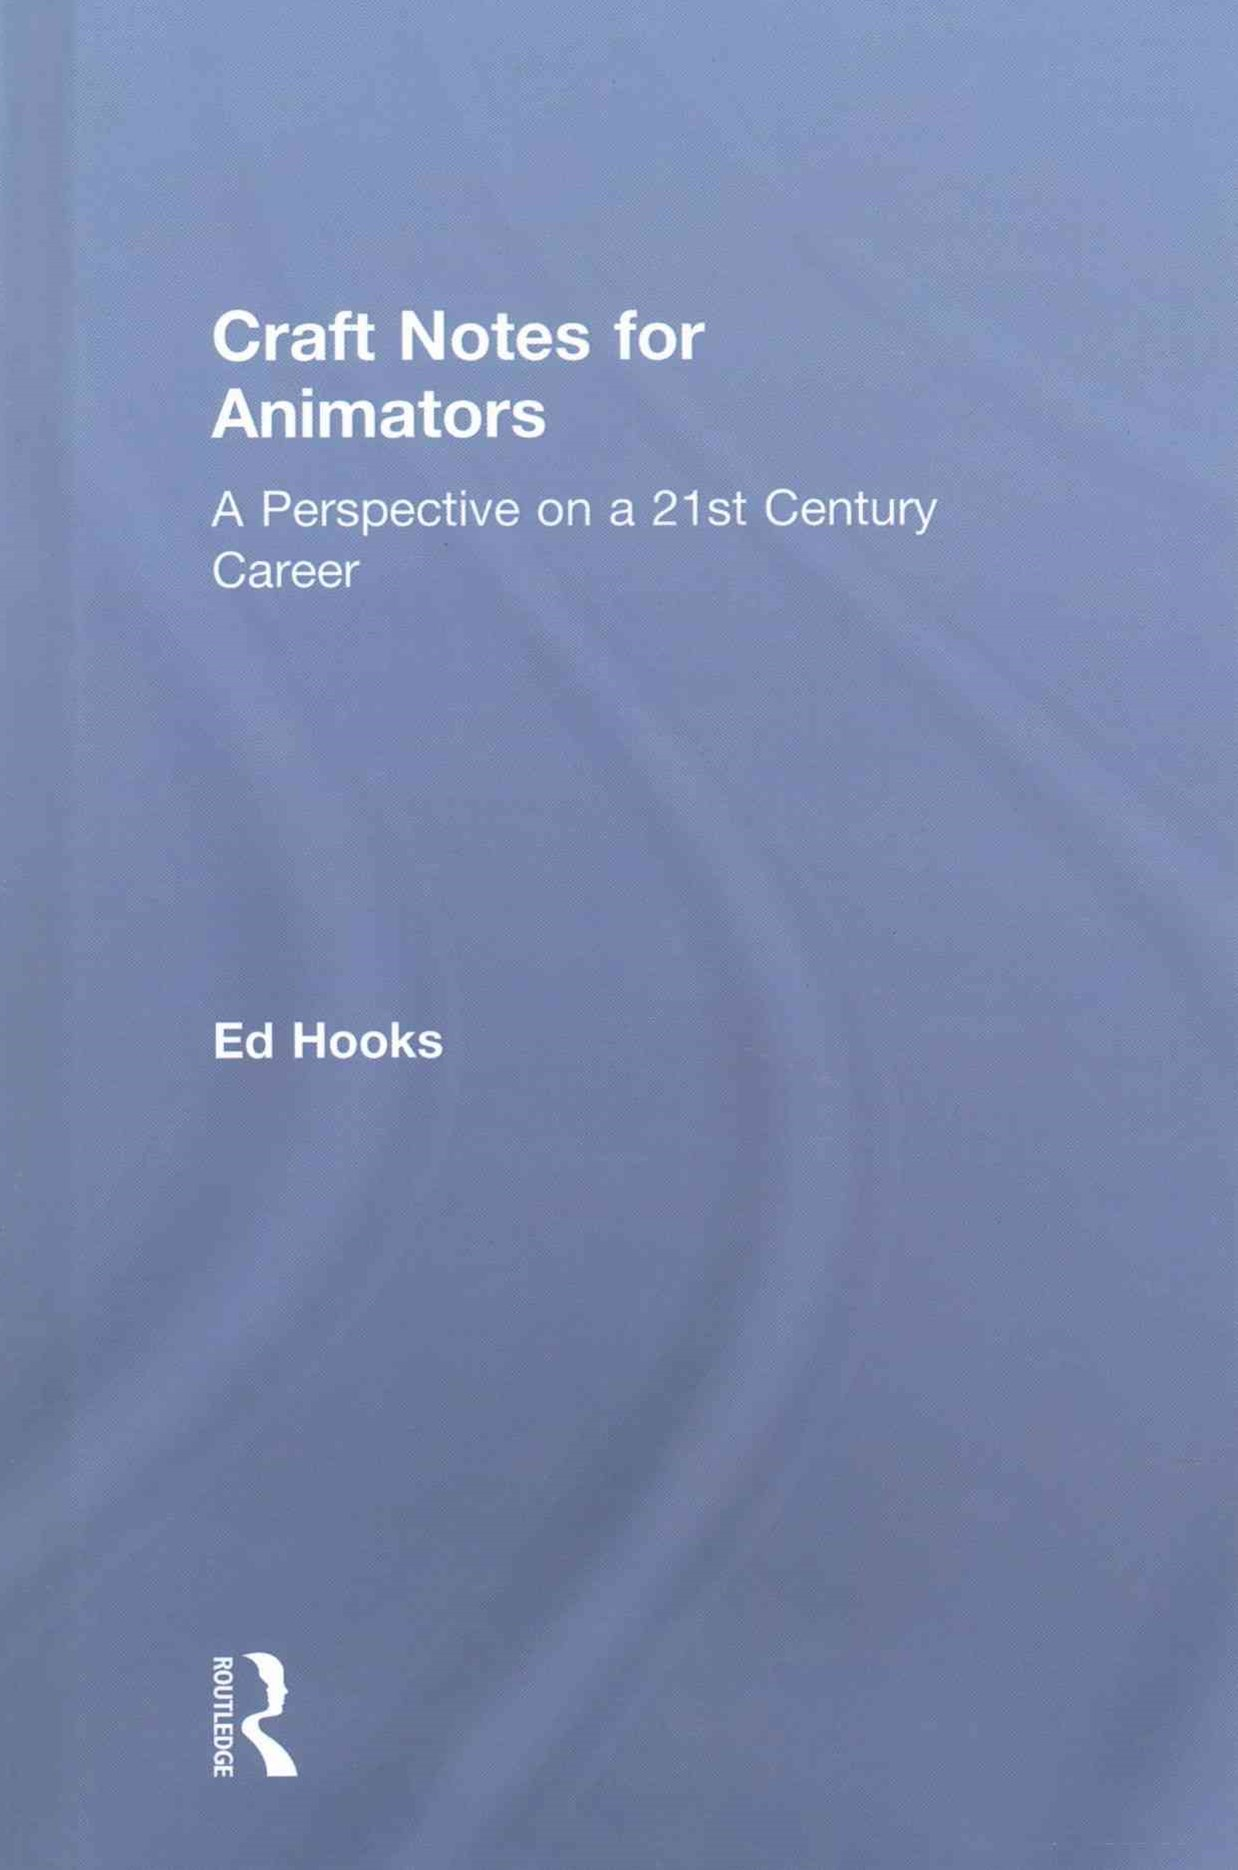 Craft Notes for Animators